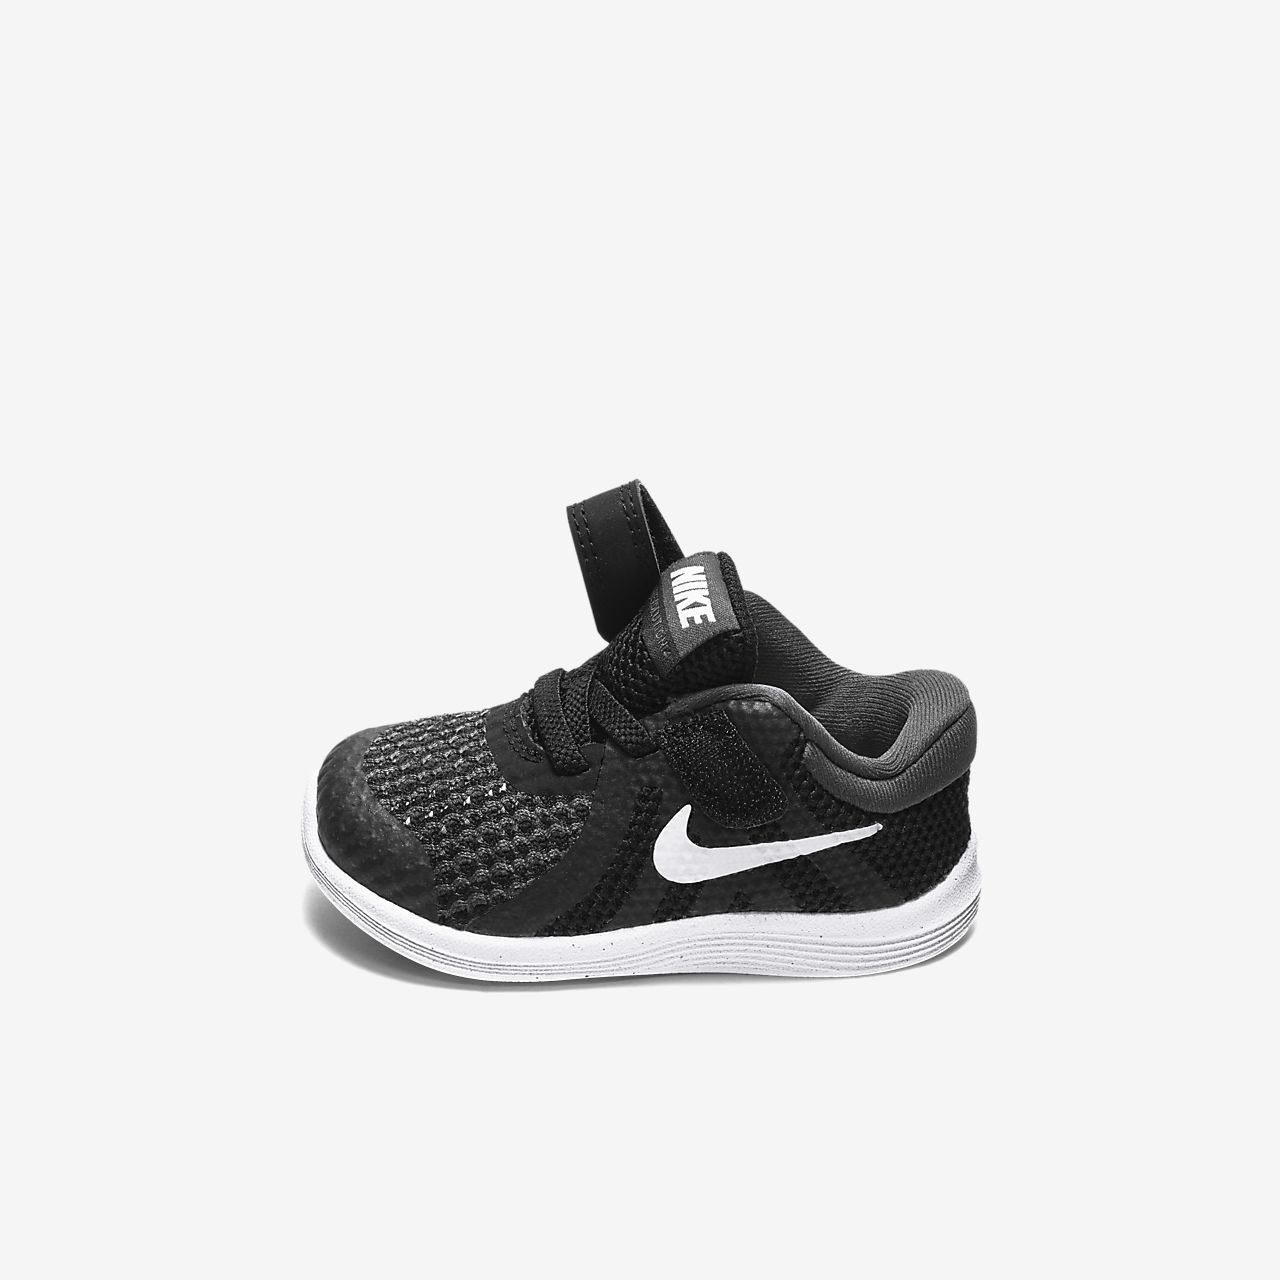 best loved c66ad 913d0 ... Nike Revolution 4 Baby   Toddler Shoe